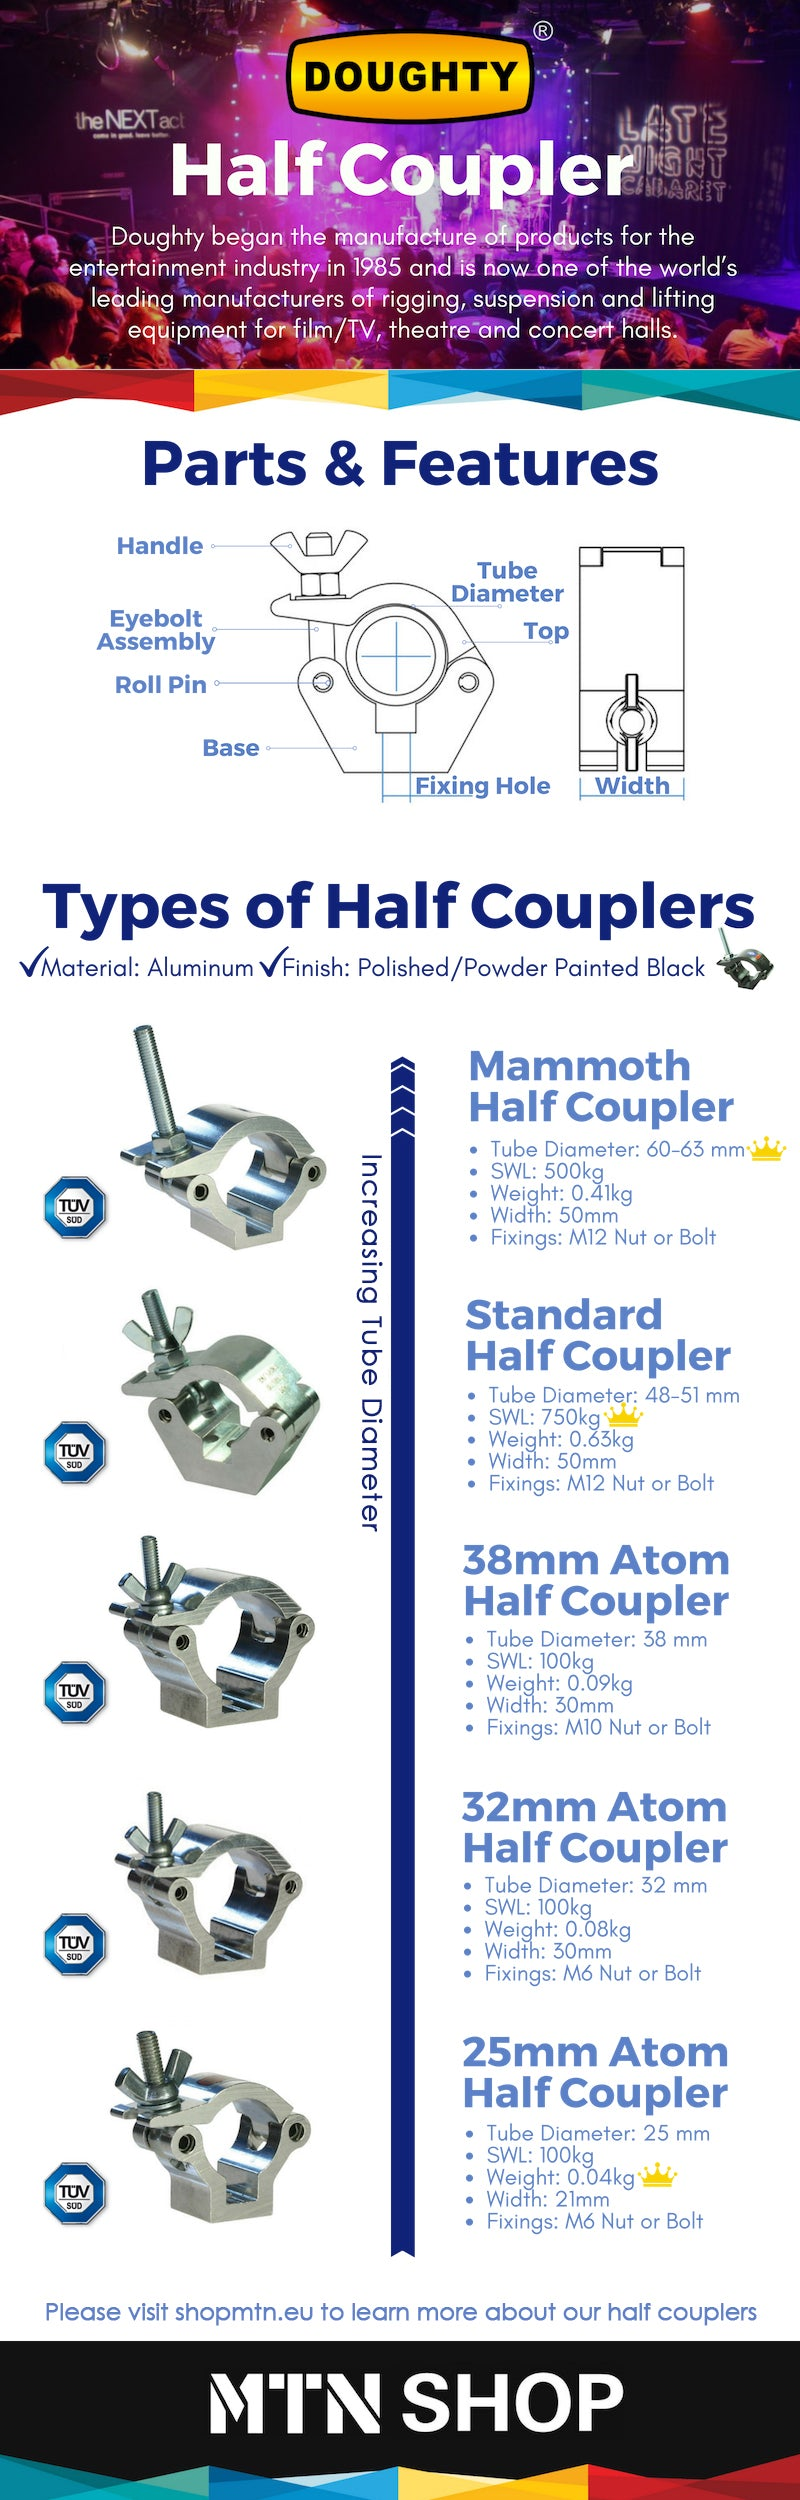 Doughty Clamp - Doughty Half Coupler Infographic